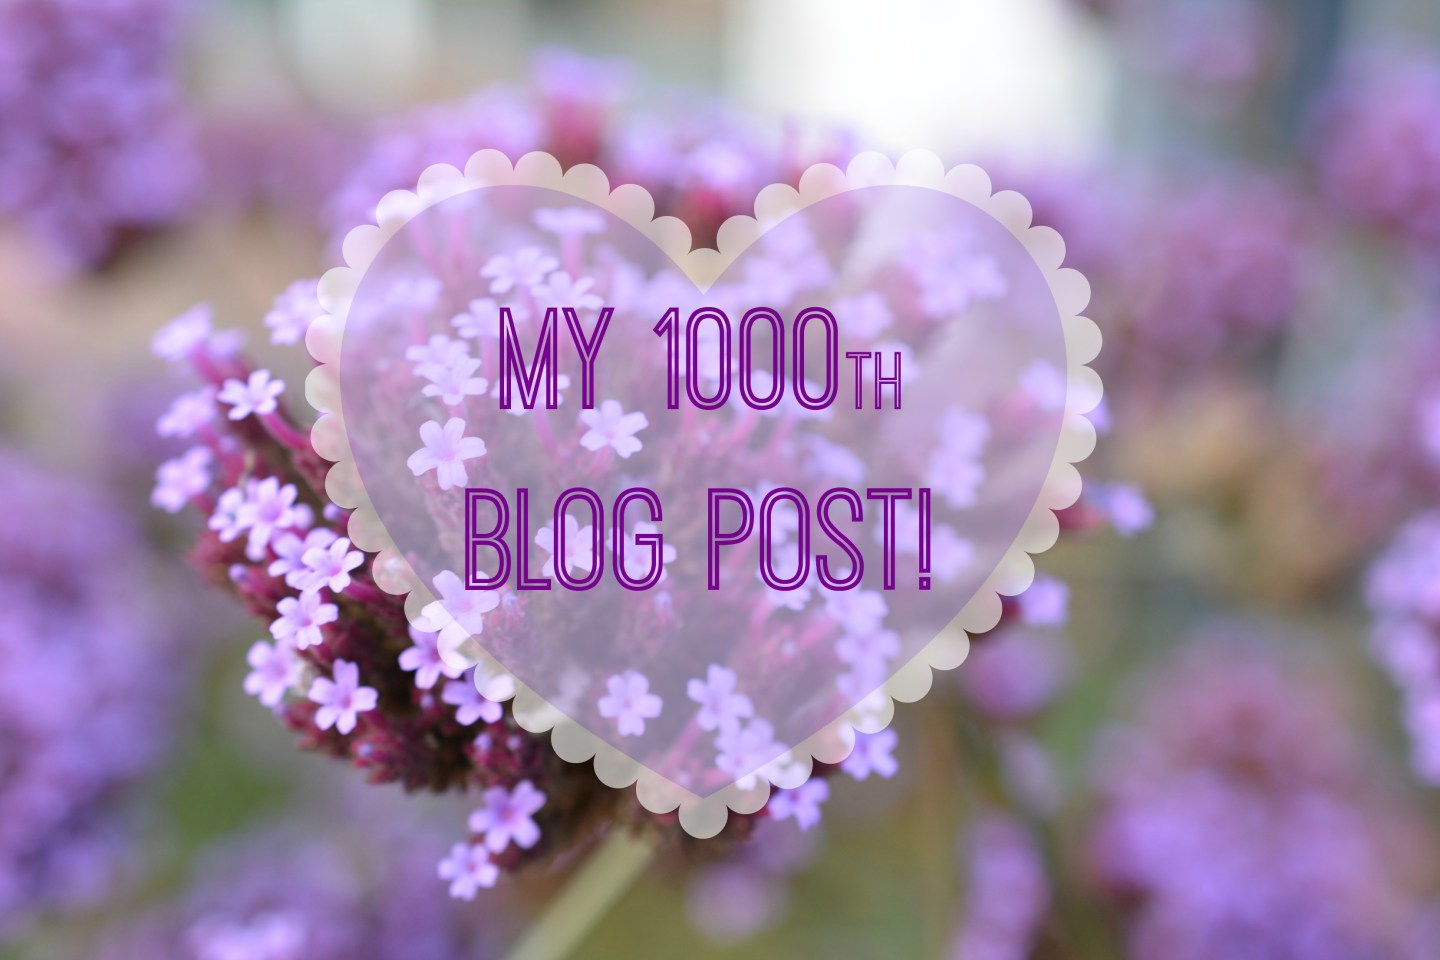 This is my 1000th Post and I have Big Plans for the Blog!